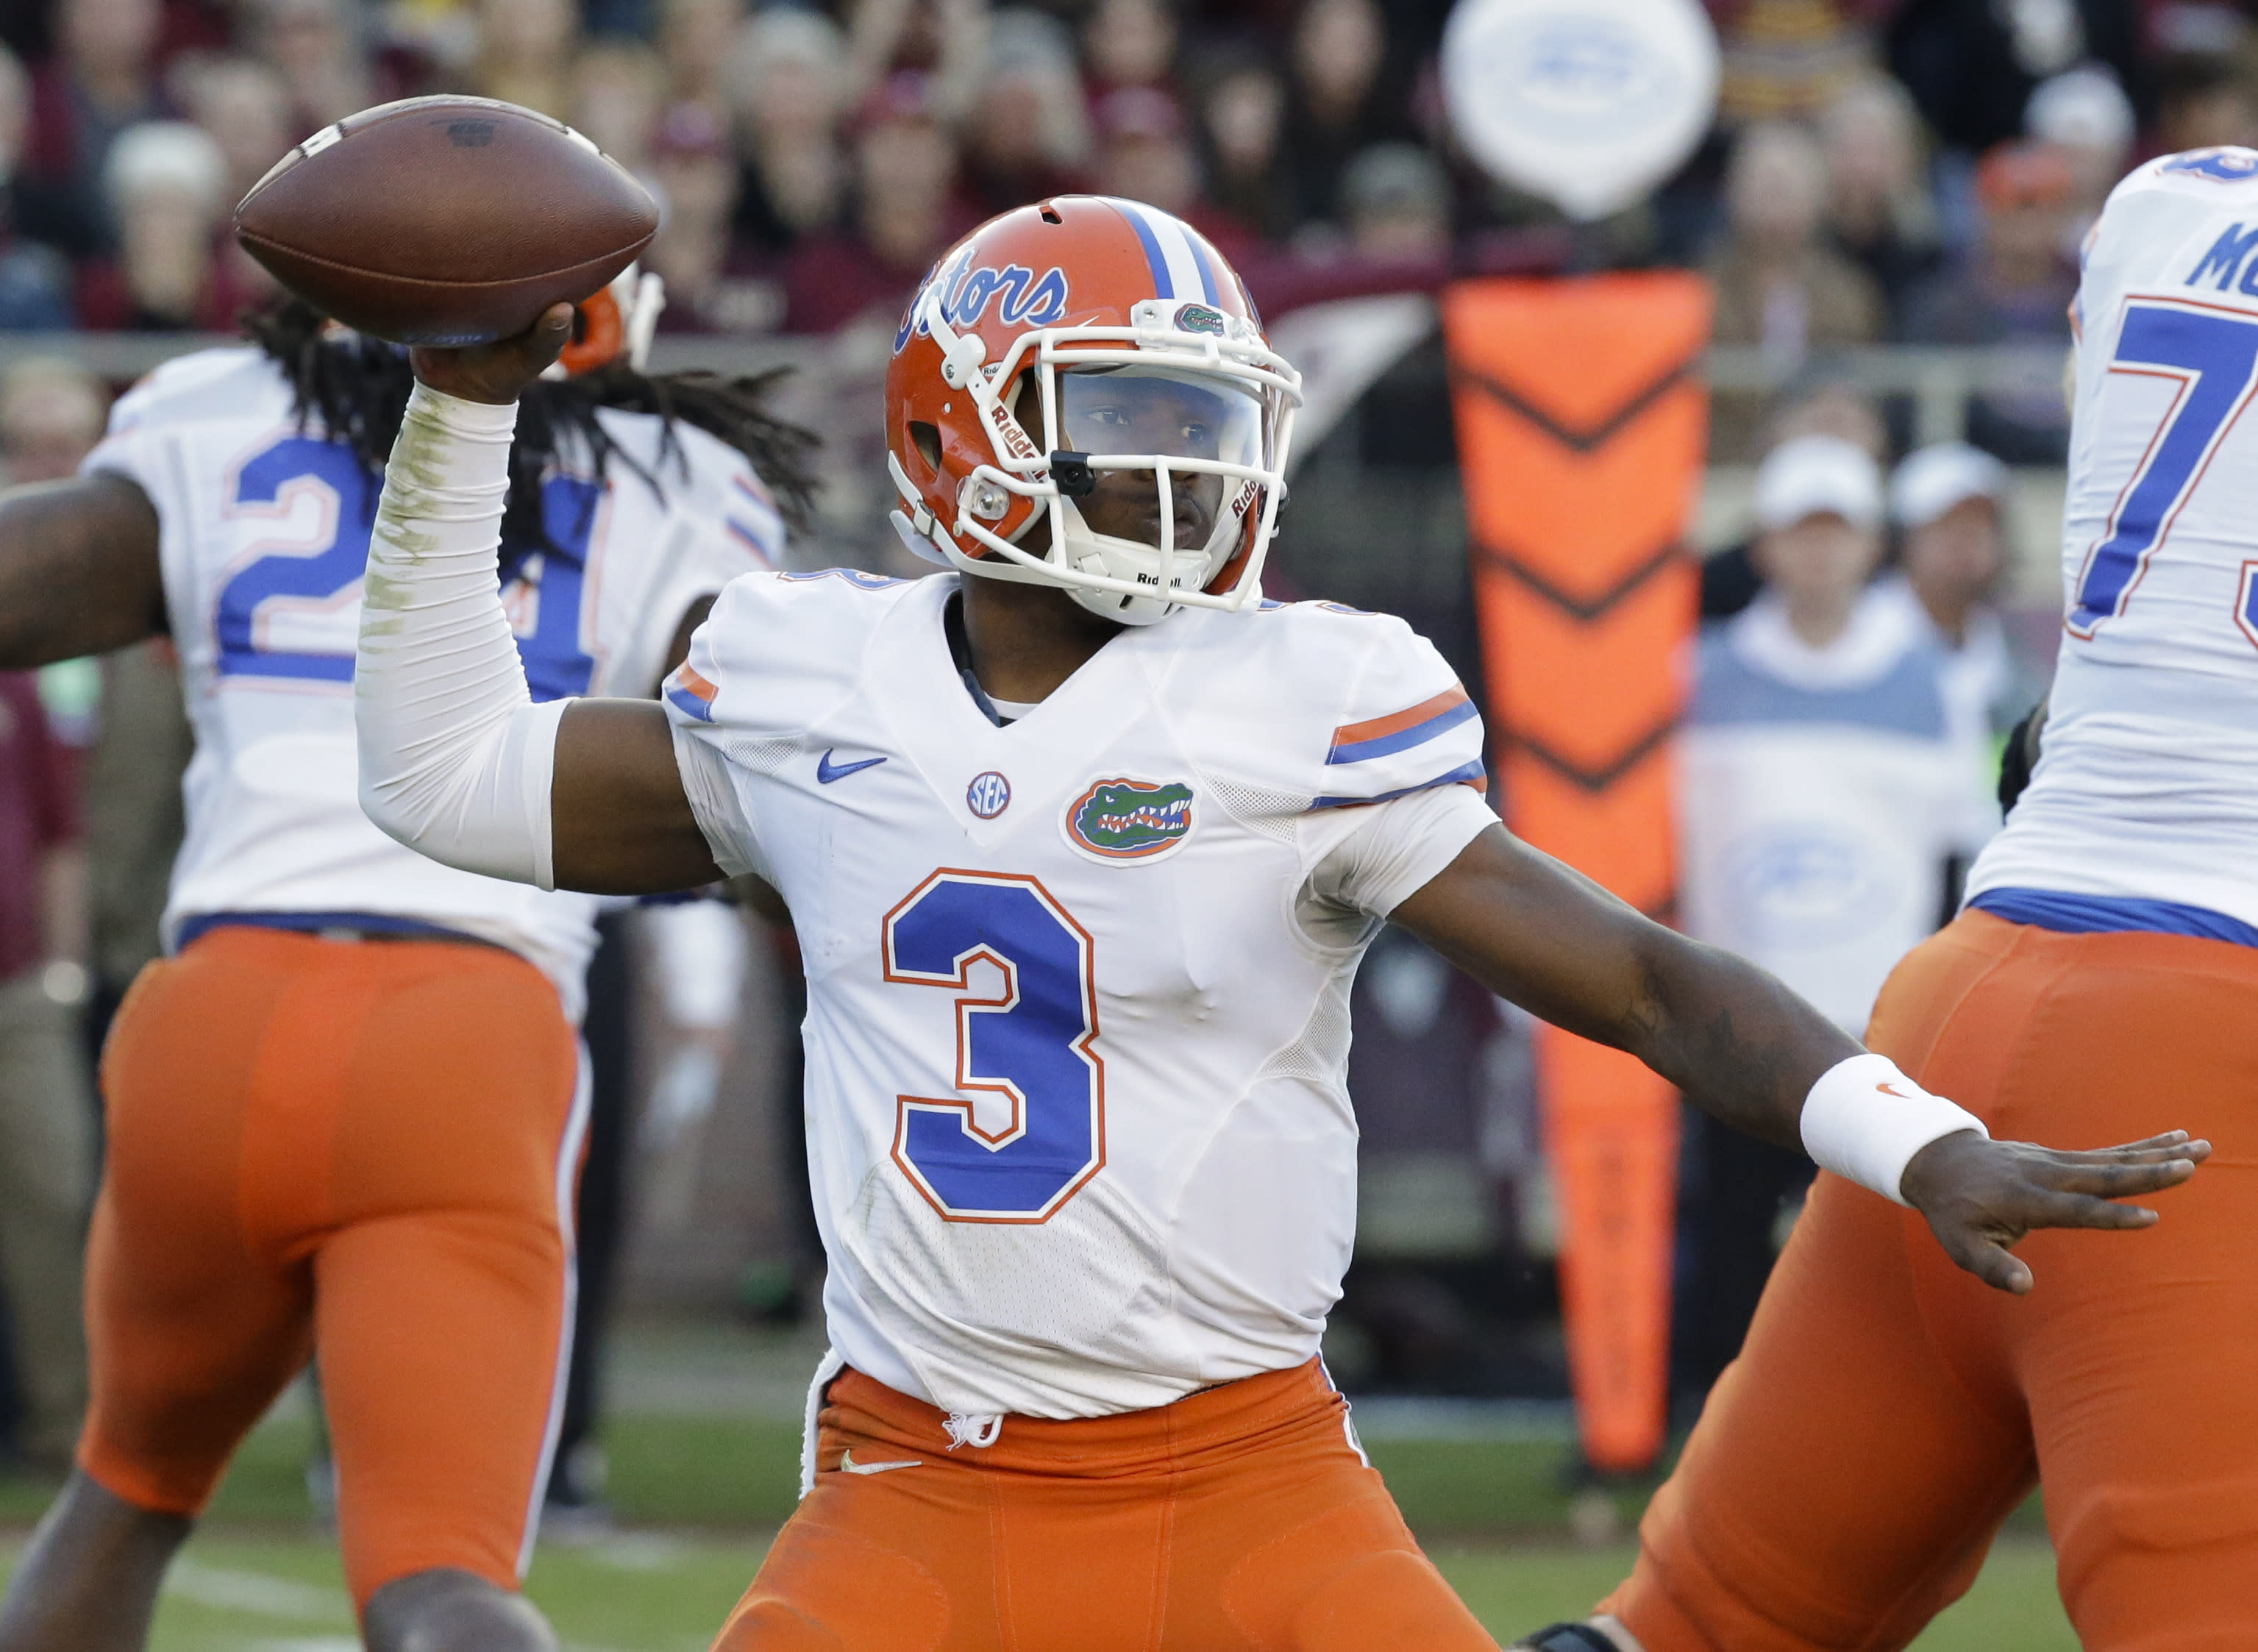 Florida QB Harris cited for driving without license